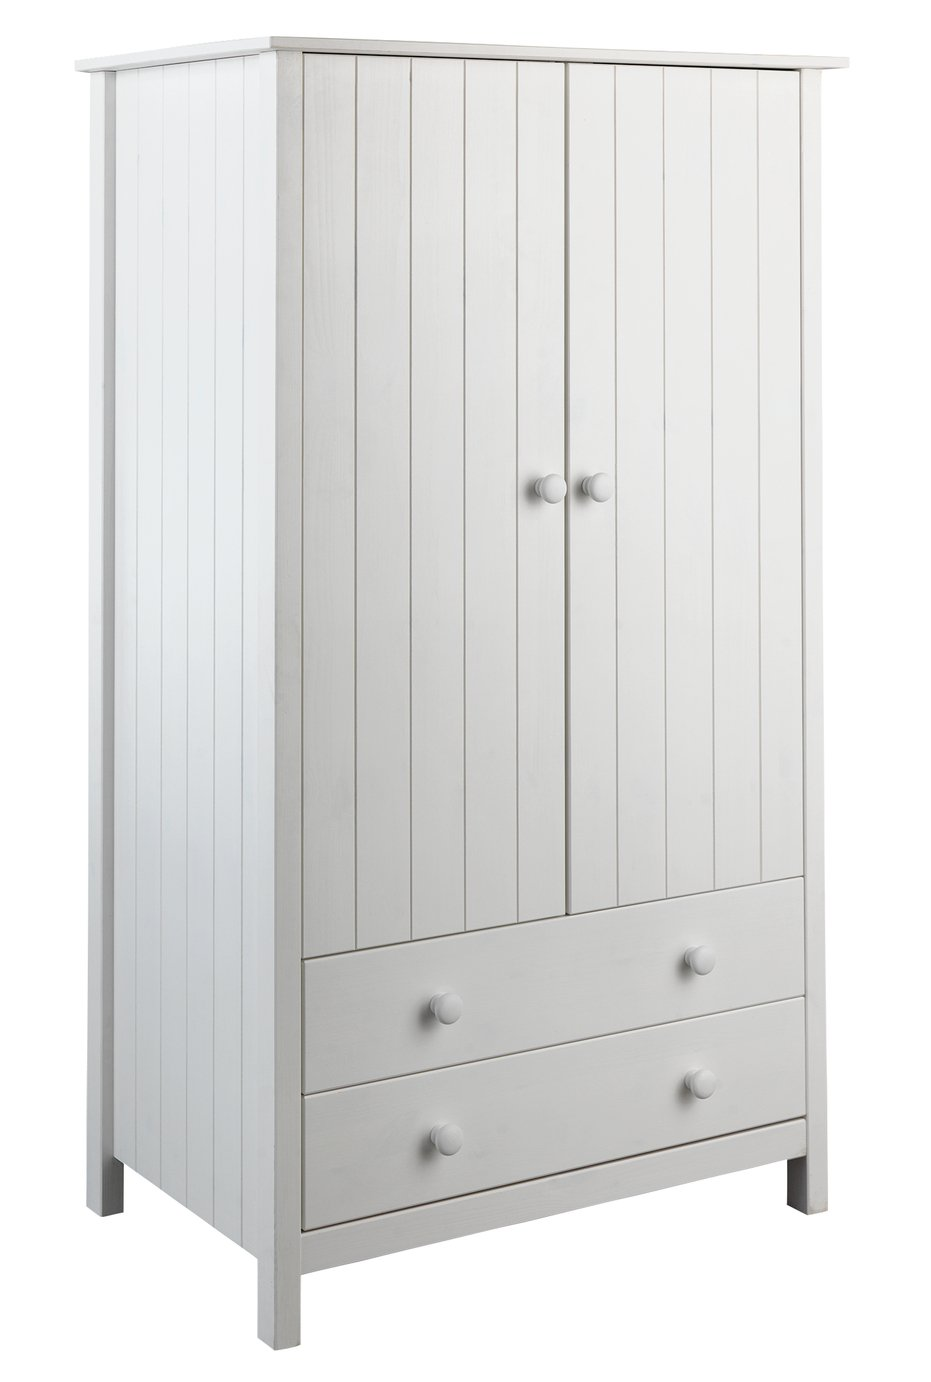 home-kids-scandinavia-2-door-2-drawer-wardrobe-white